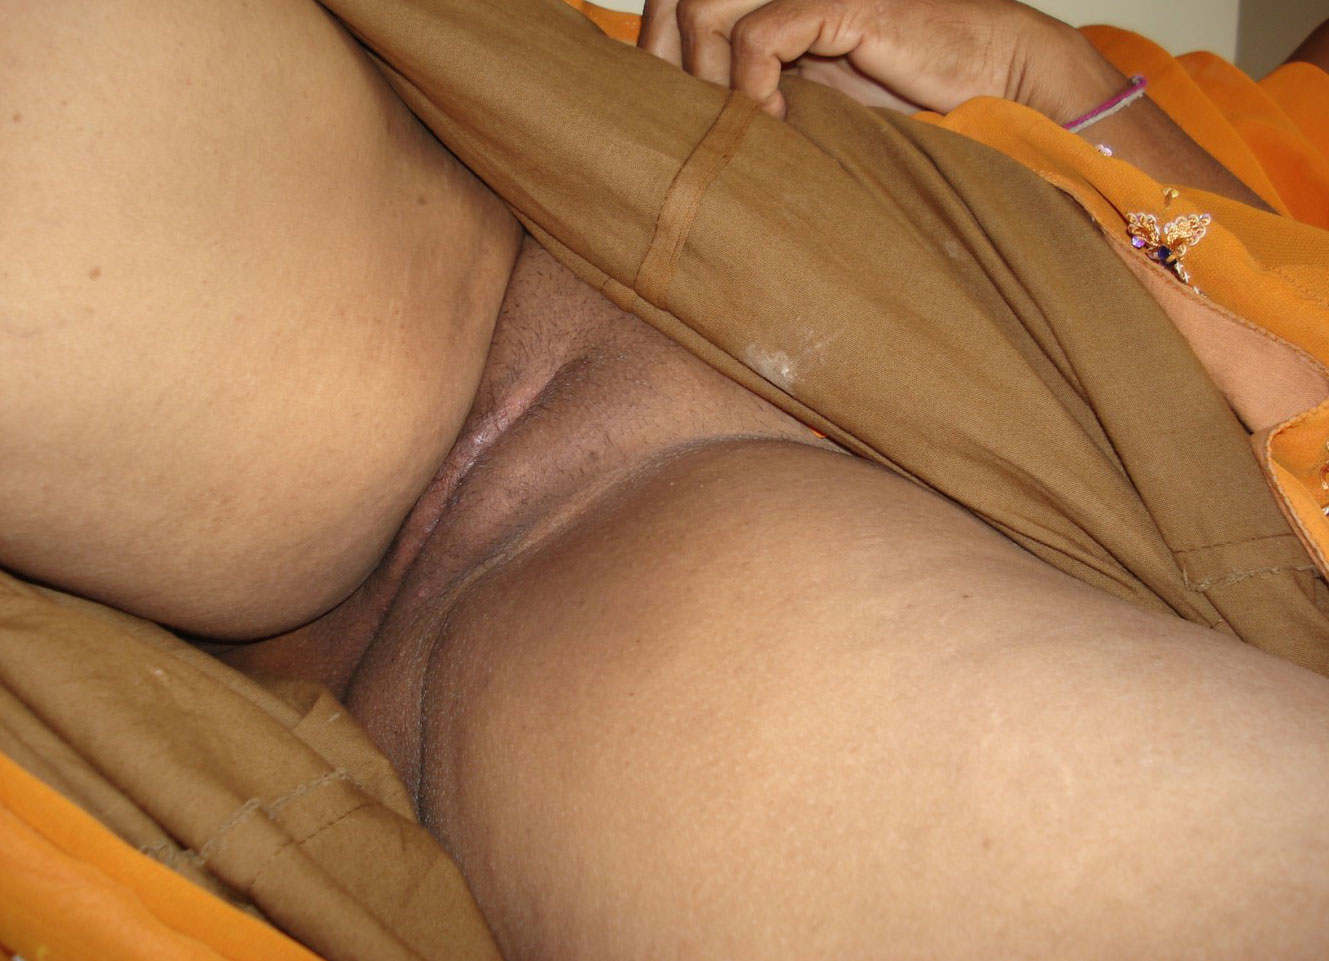 from Blaise tamil girls voyeur hot